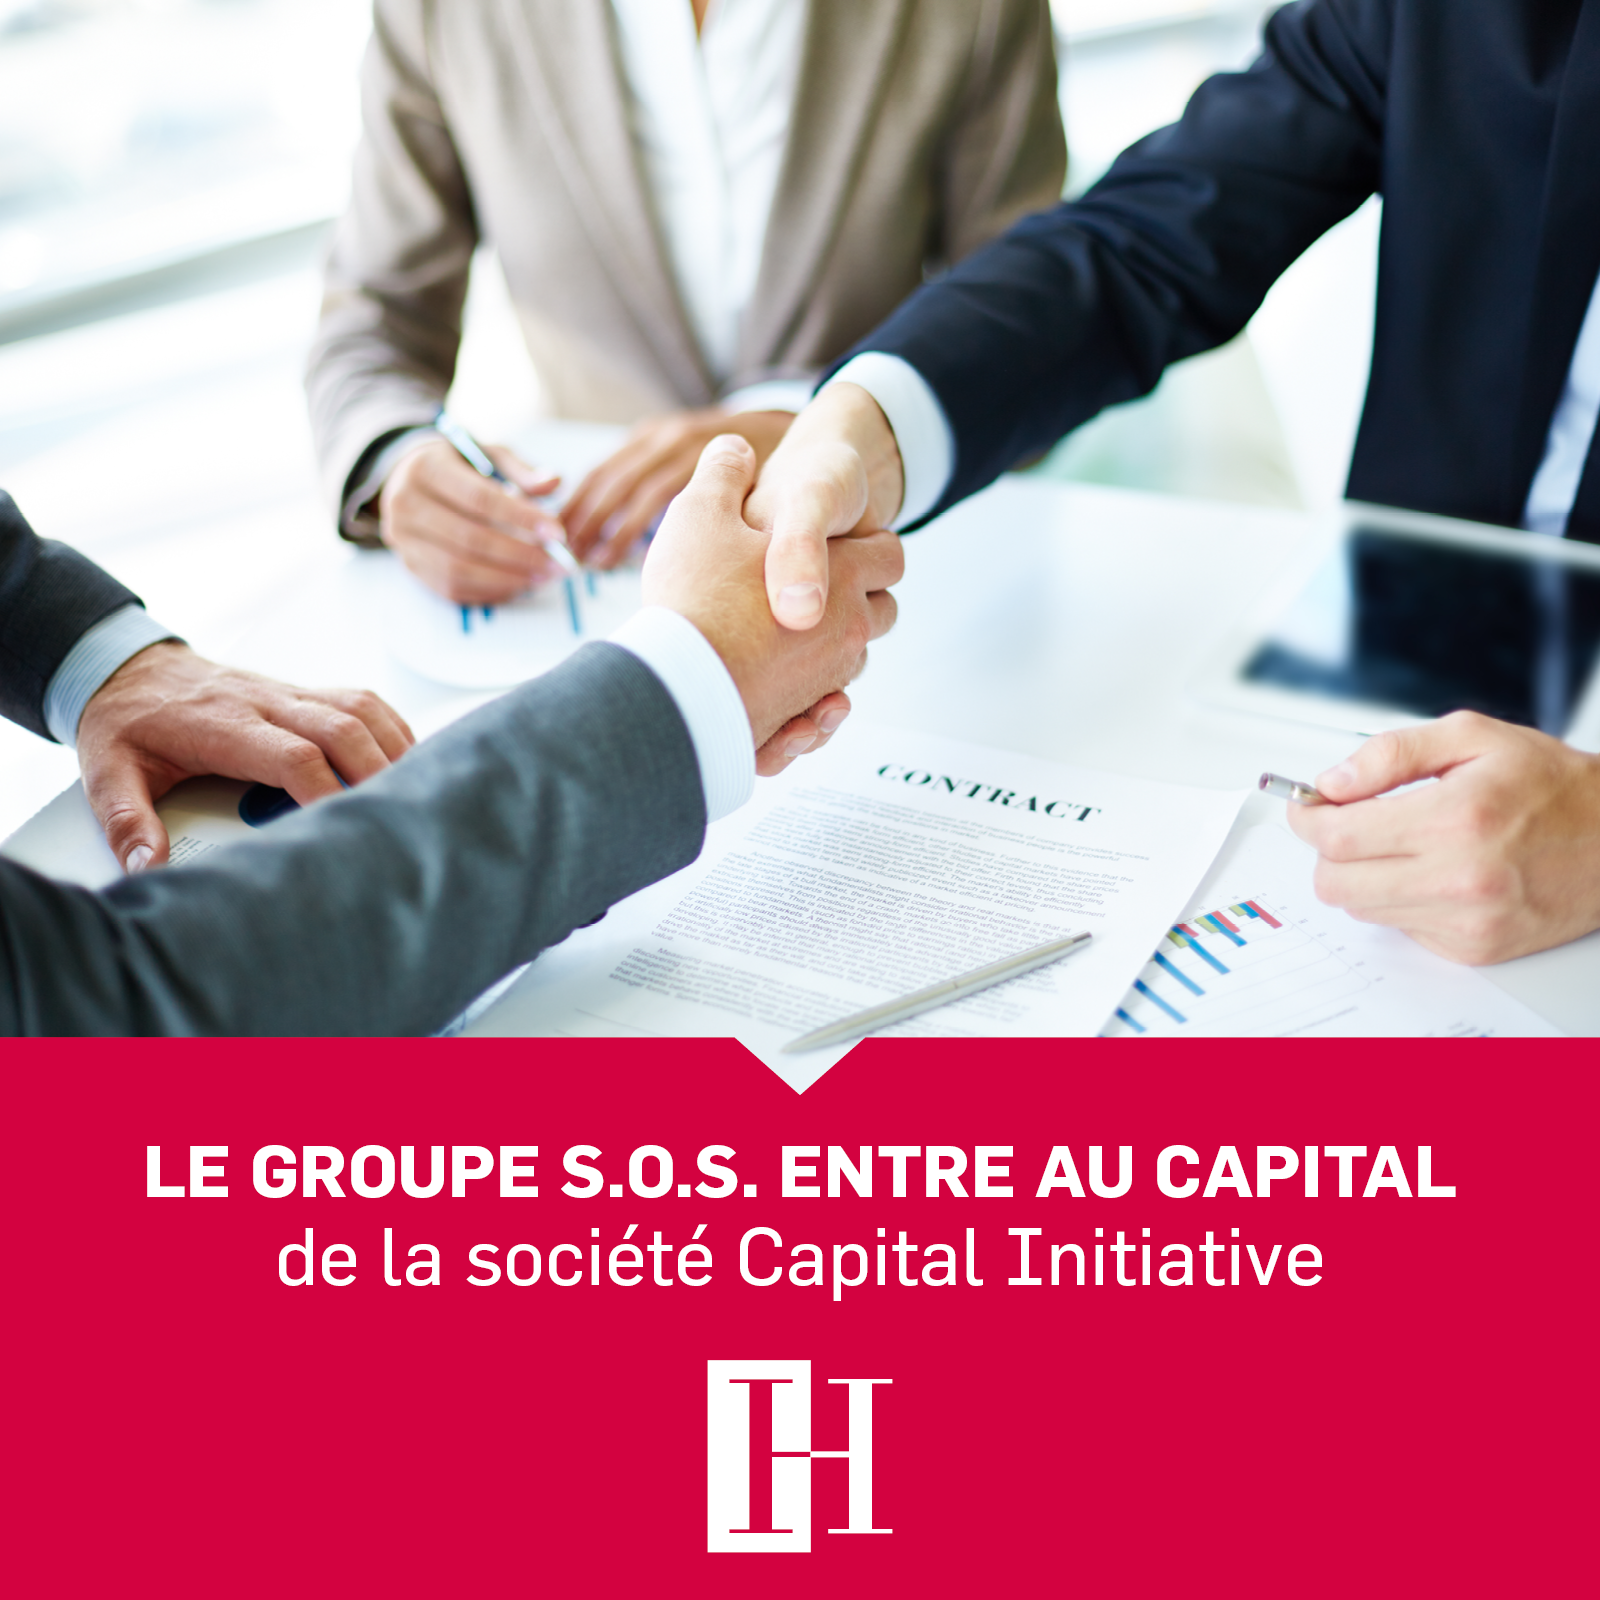 Groupe SOS entre au capital